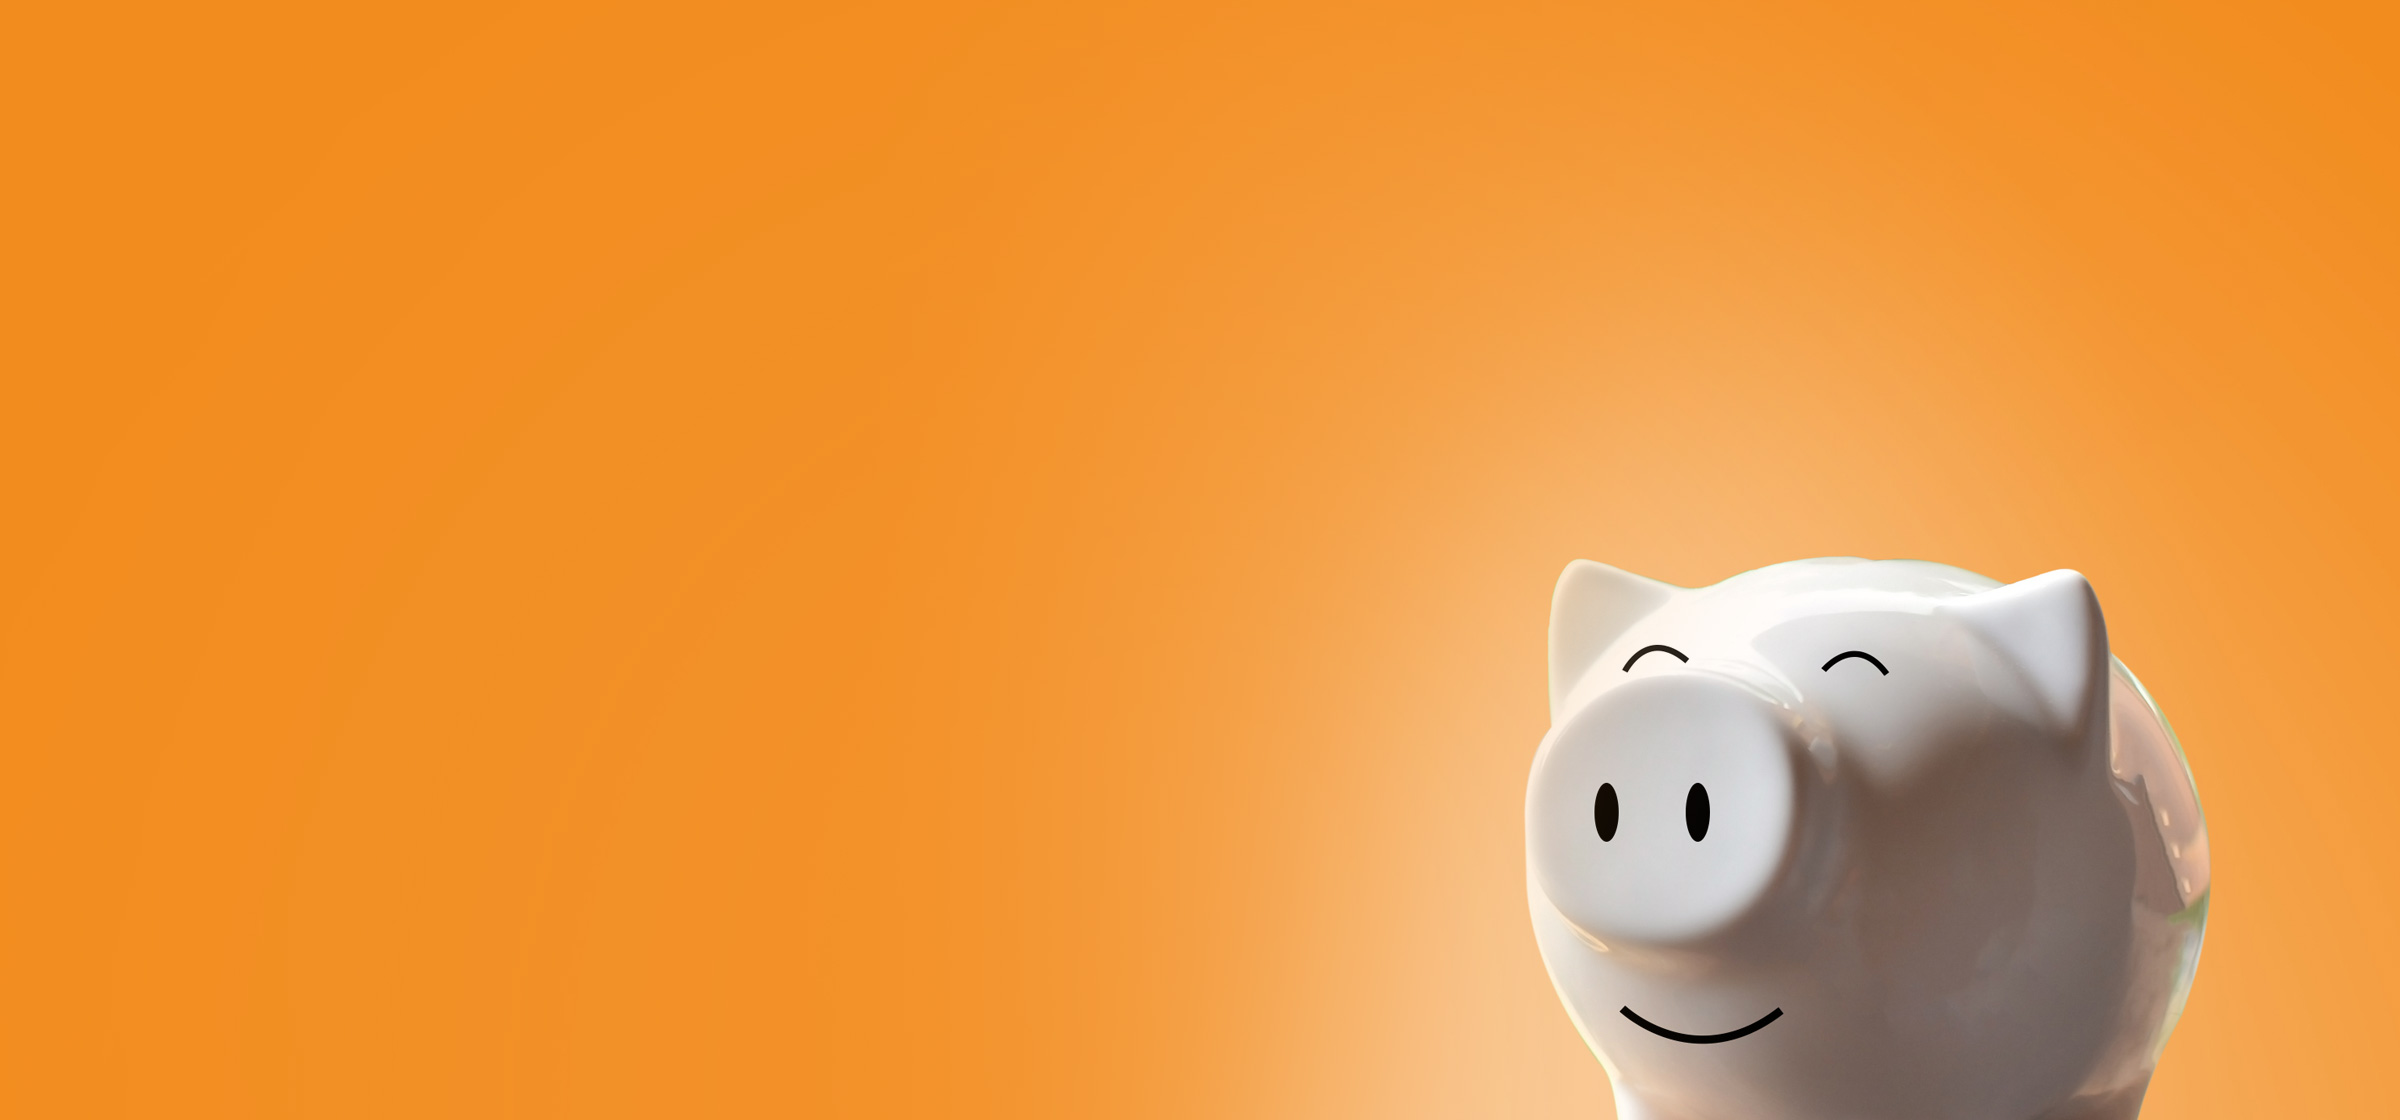 piggy bank on orange background